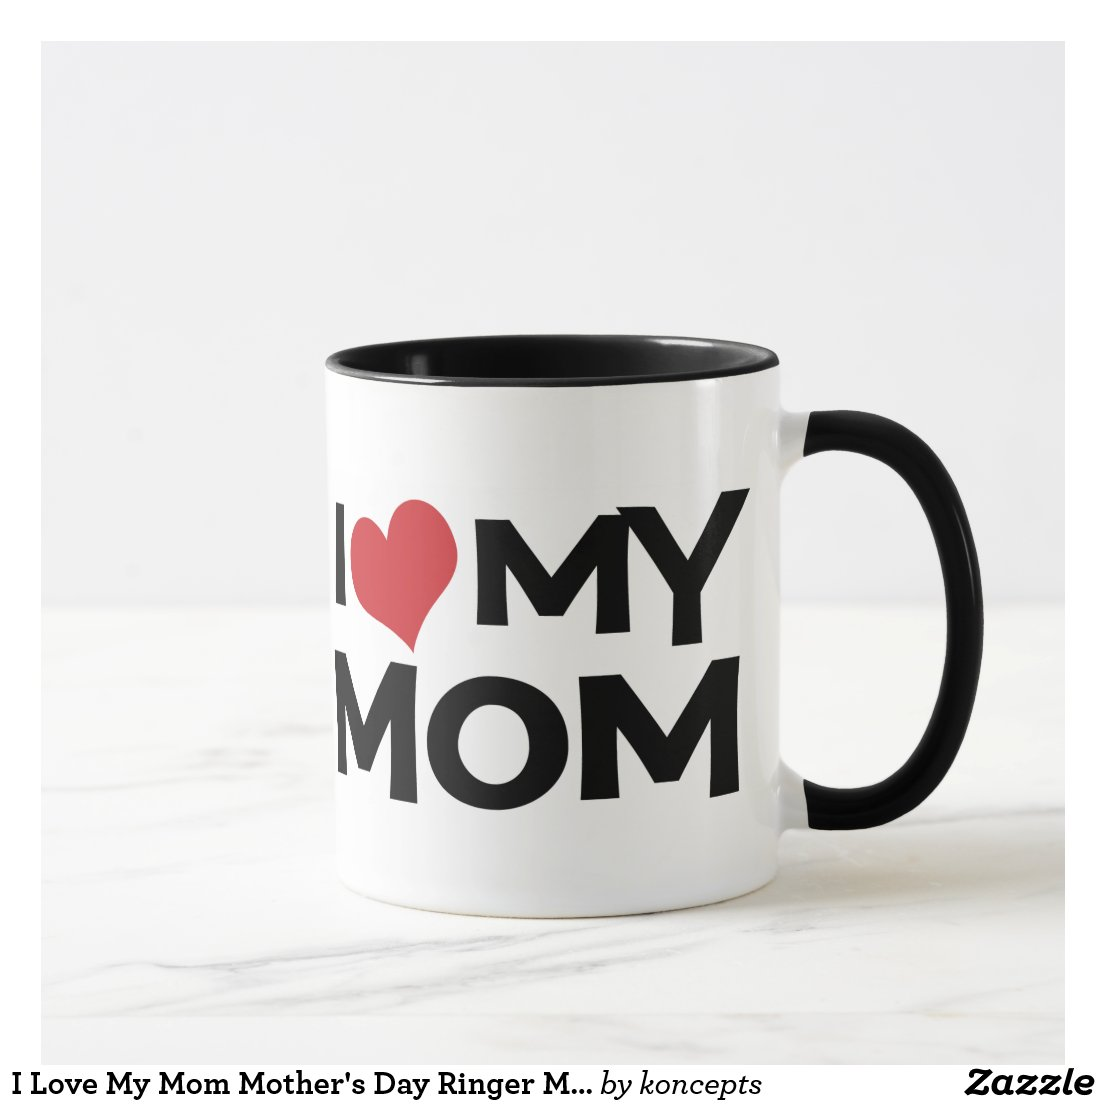 I Love My Mum Mother's Day Ringer Mug